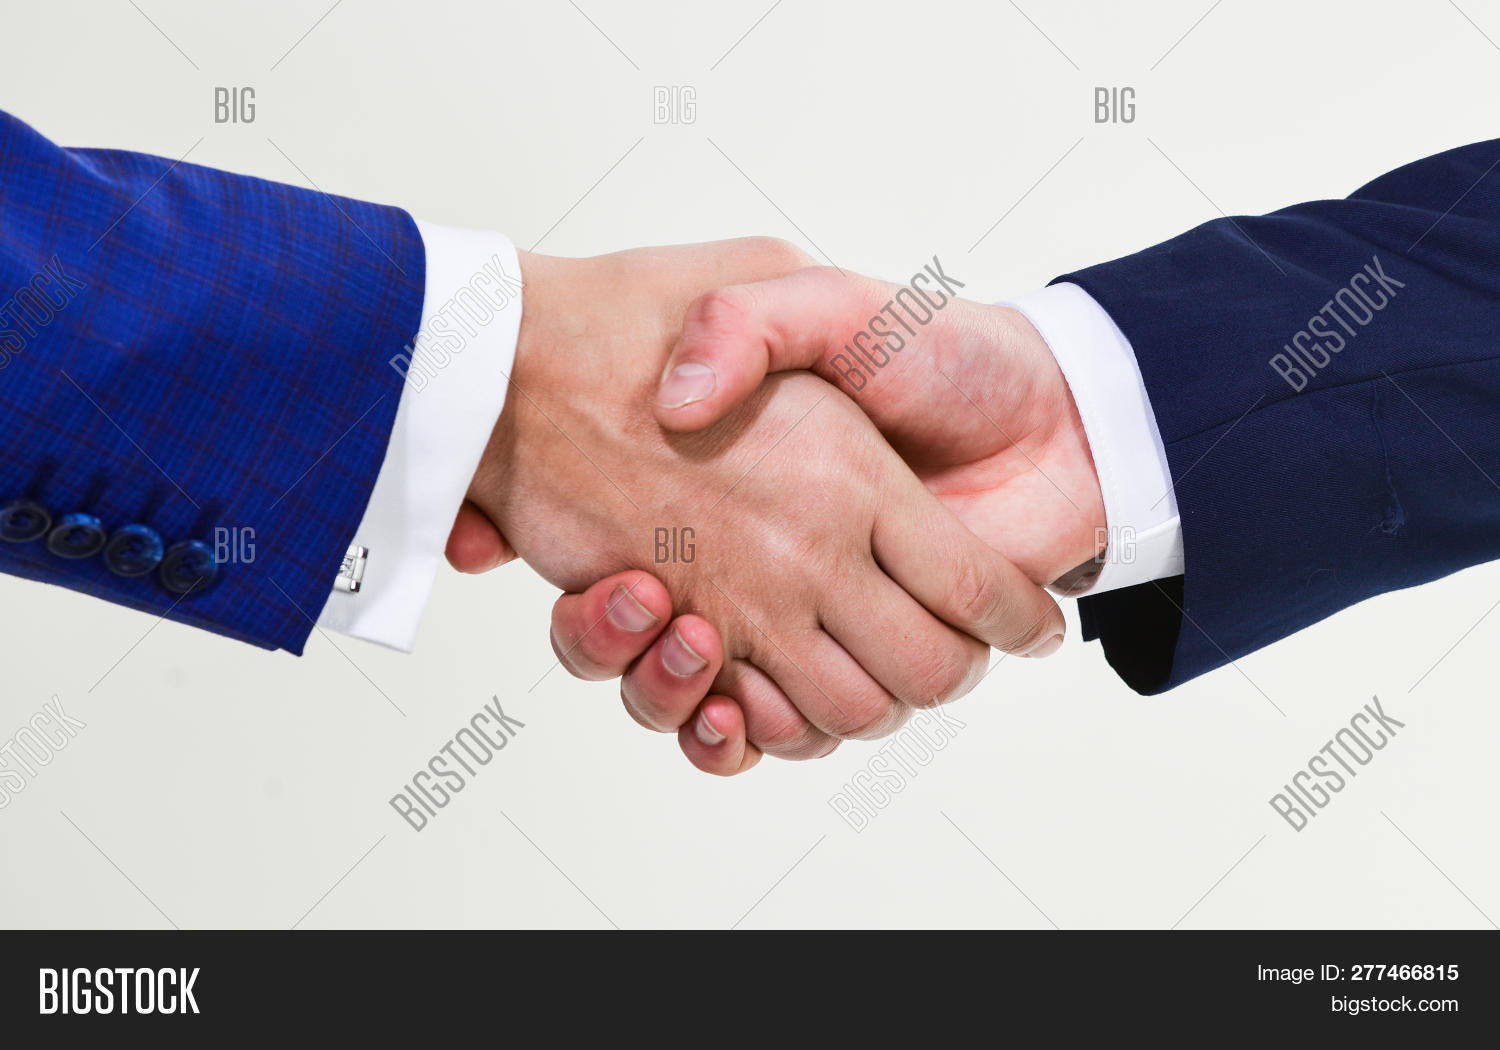 after,agree,agreement,background,business,businessman,businessmen,caucasian,collaboration,commercial,communication,concept,confidence,congratulating,contract,cooperation,deal,friendly,friends,friendship,gesture,hands,handshake,handshaking,job,leadership,male,meeting,office,partner,partnership,professional,profitable,shaking,signing,success,successful,suit,support,team,teamwork,white,work